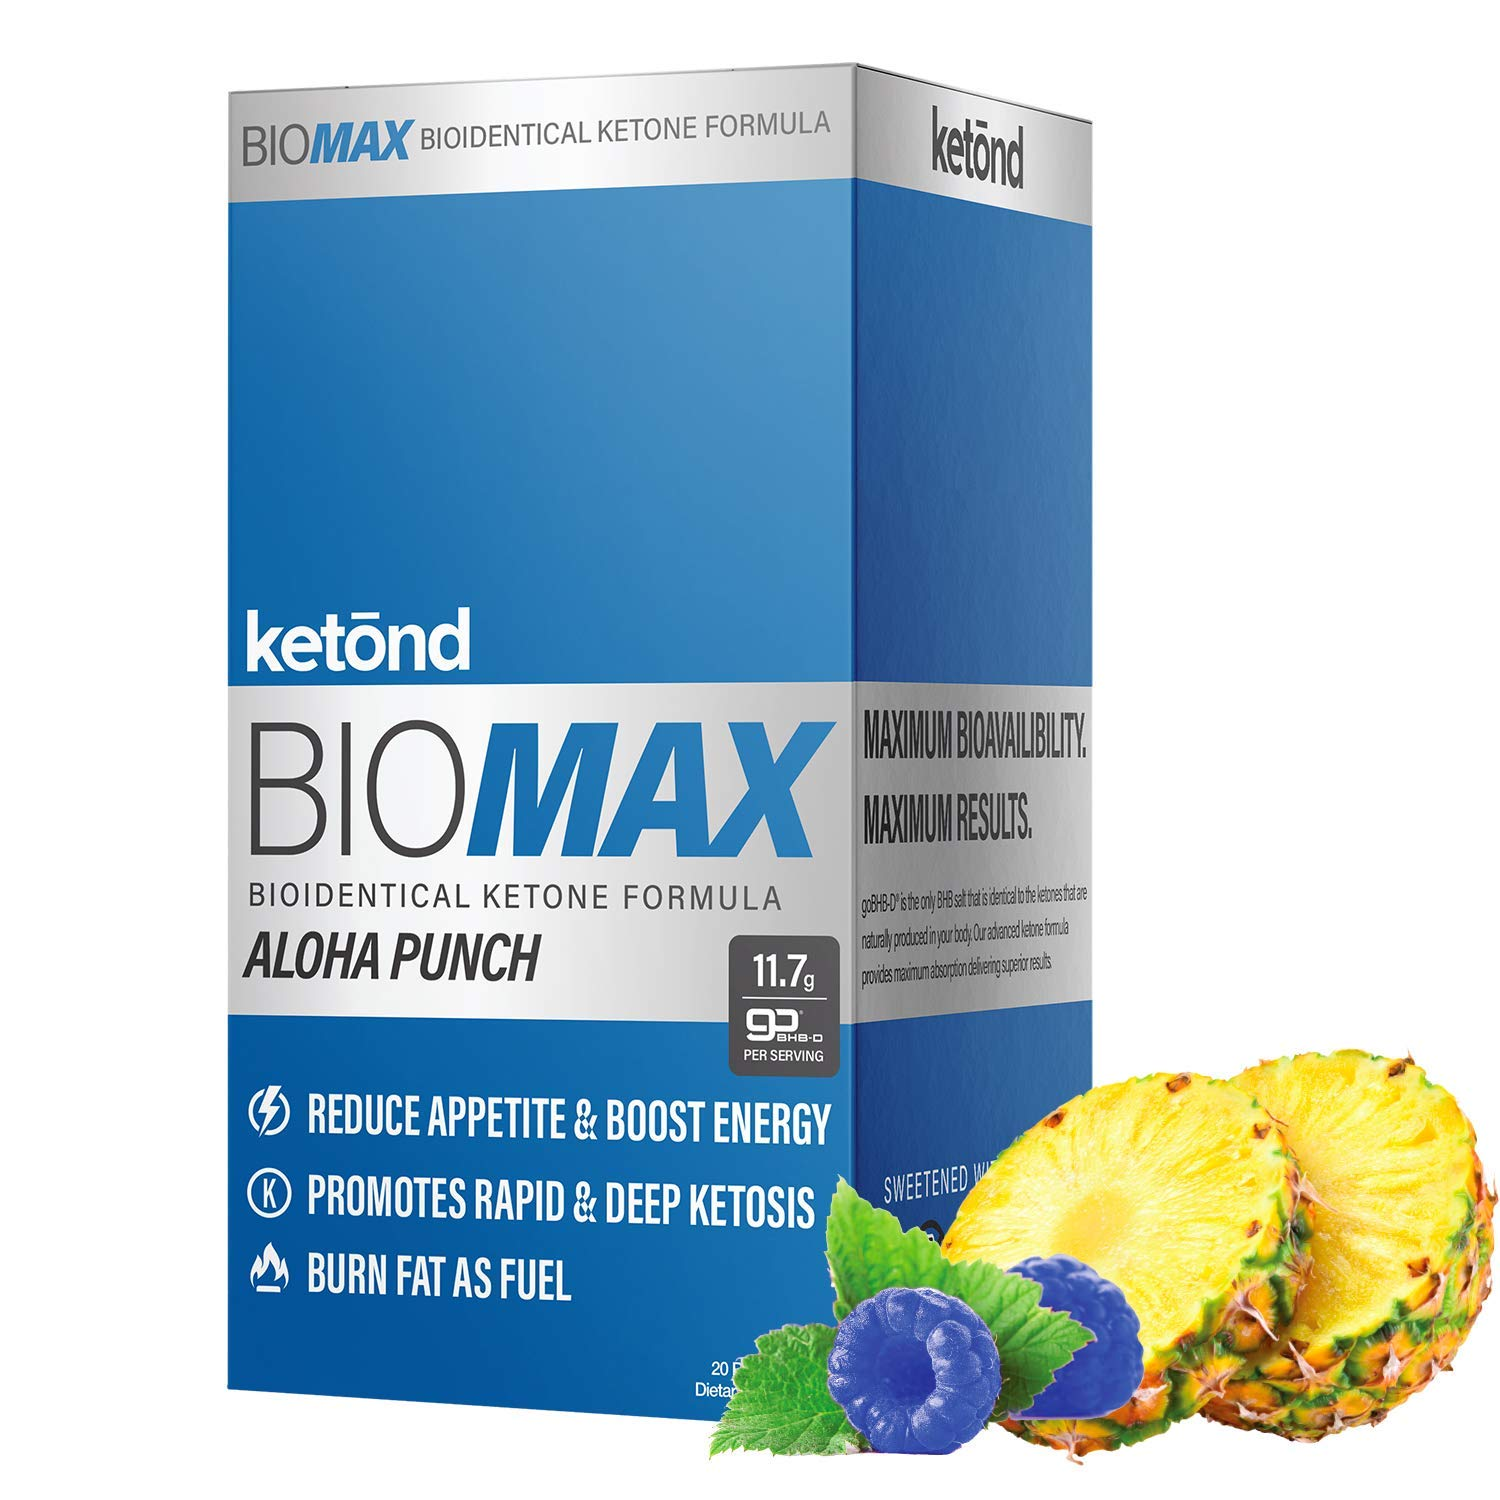 Ketōnd BioMAX - 20 'on the go packs' 11.7g of goBHB-D - the first of its kind all-natural ketone that is BIOLOGICALLY IDENTICAL to the ketones your body makes! (Aloha Punch) by Ketond Nutrition (Image #1)